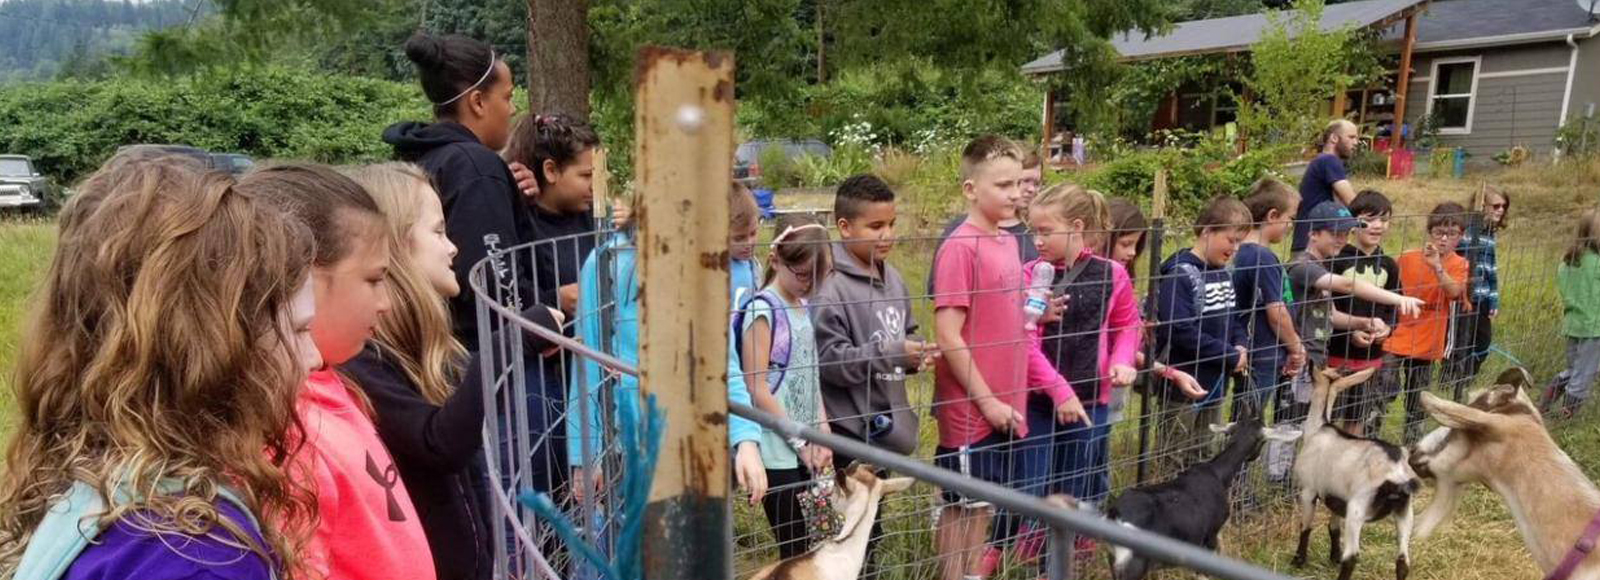 Group of kids stands near a fenced area looking at goats.